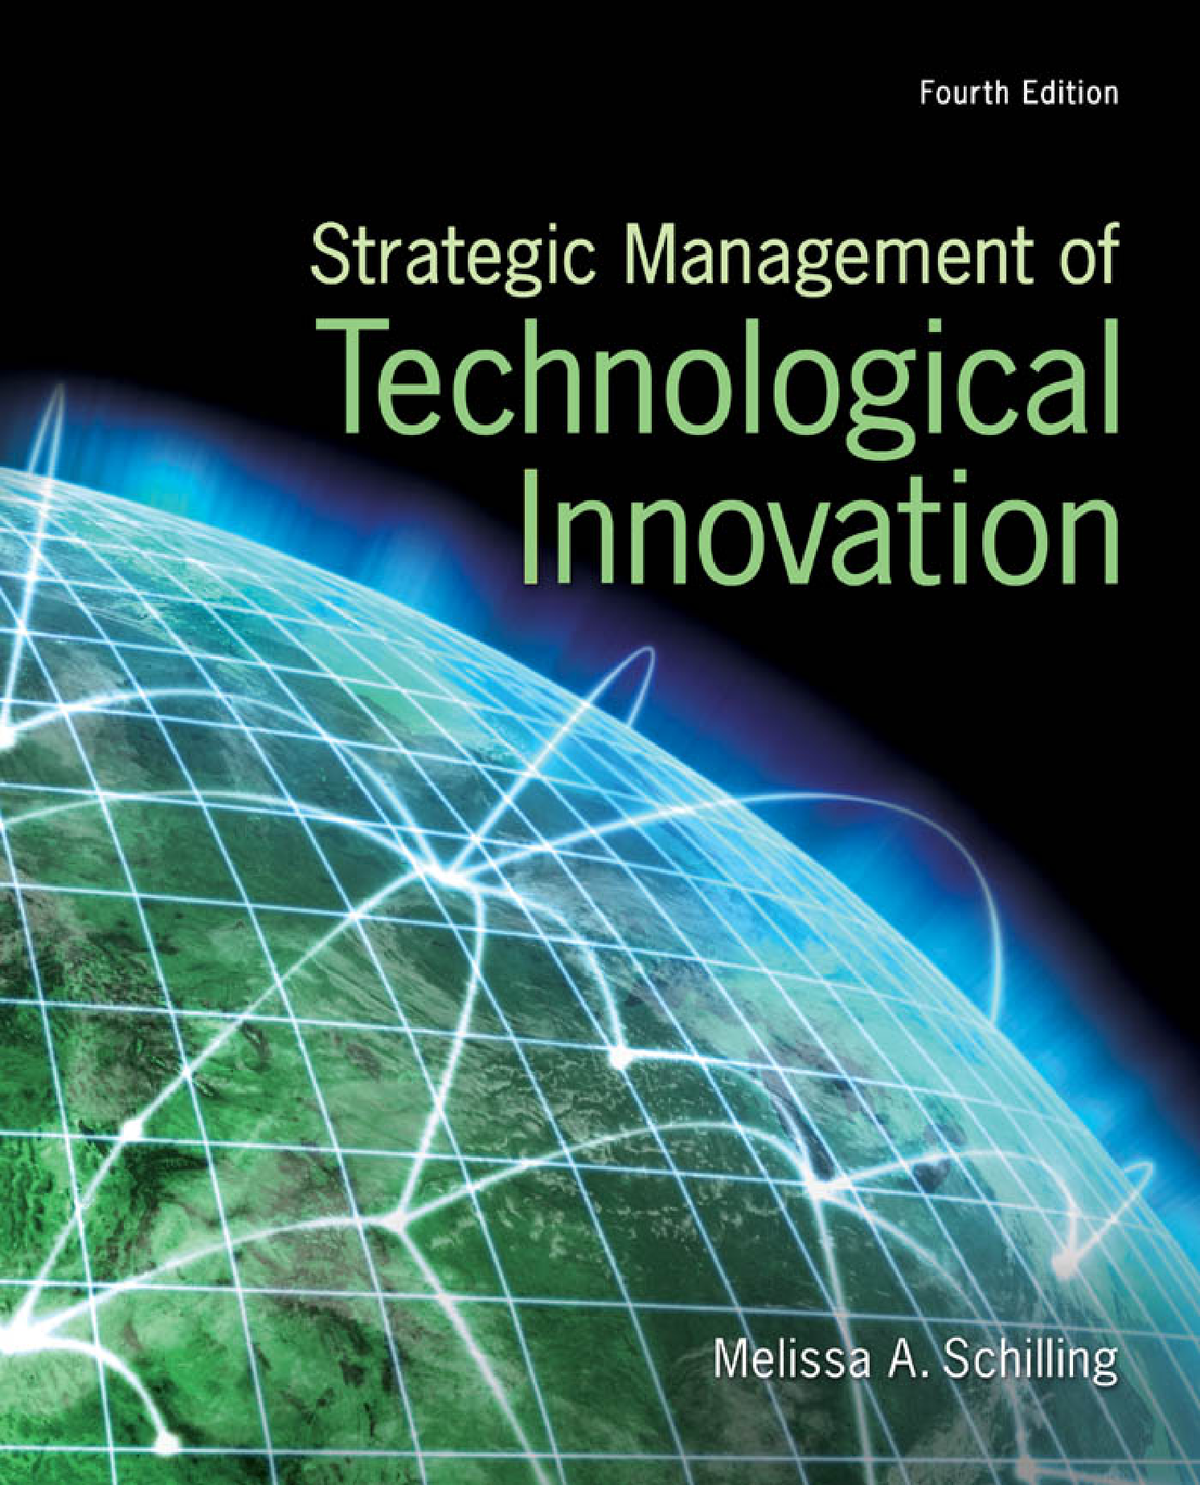 Strategic Management of Technological Innovation 4th ed